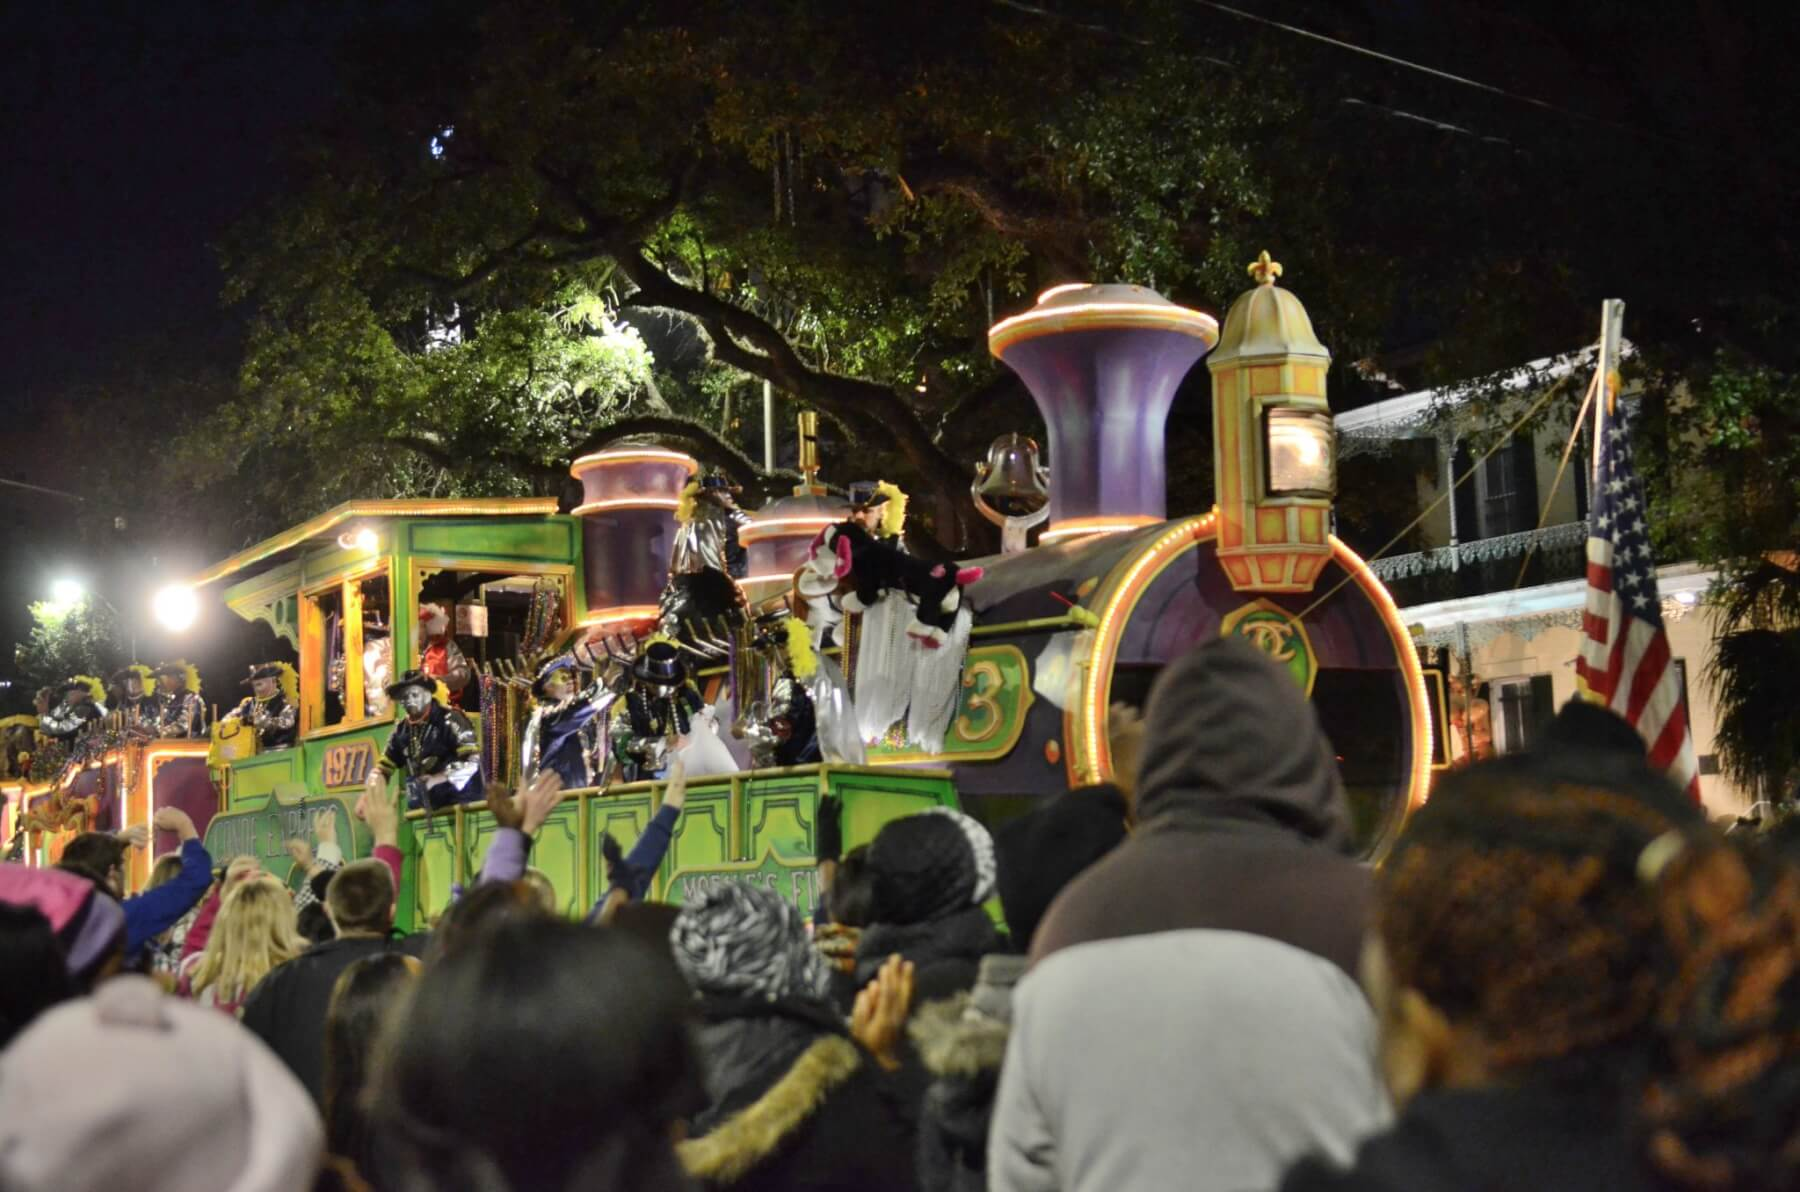 Police estimate more than 84,000 attend first Mardi Gras parade